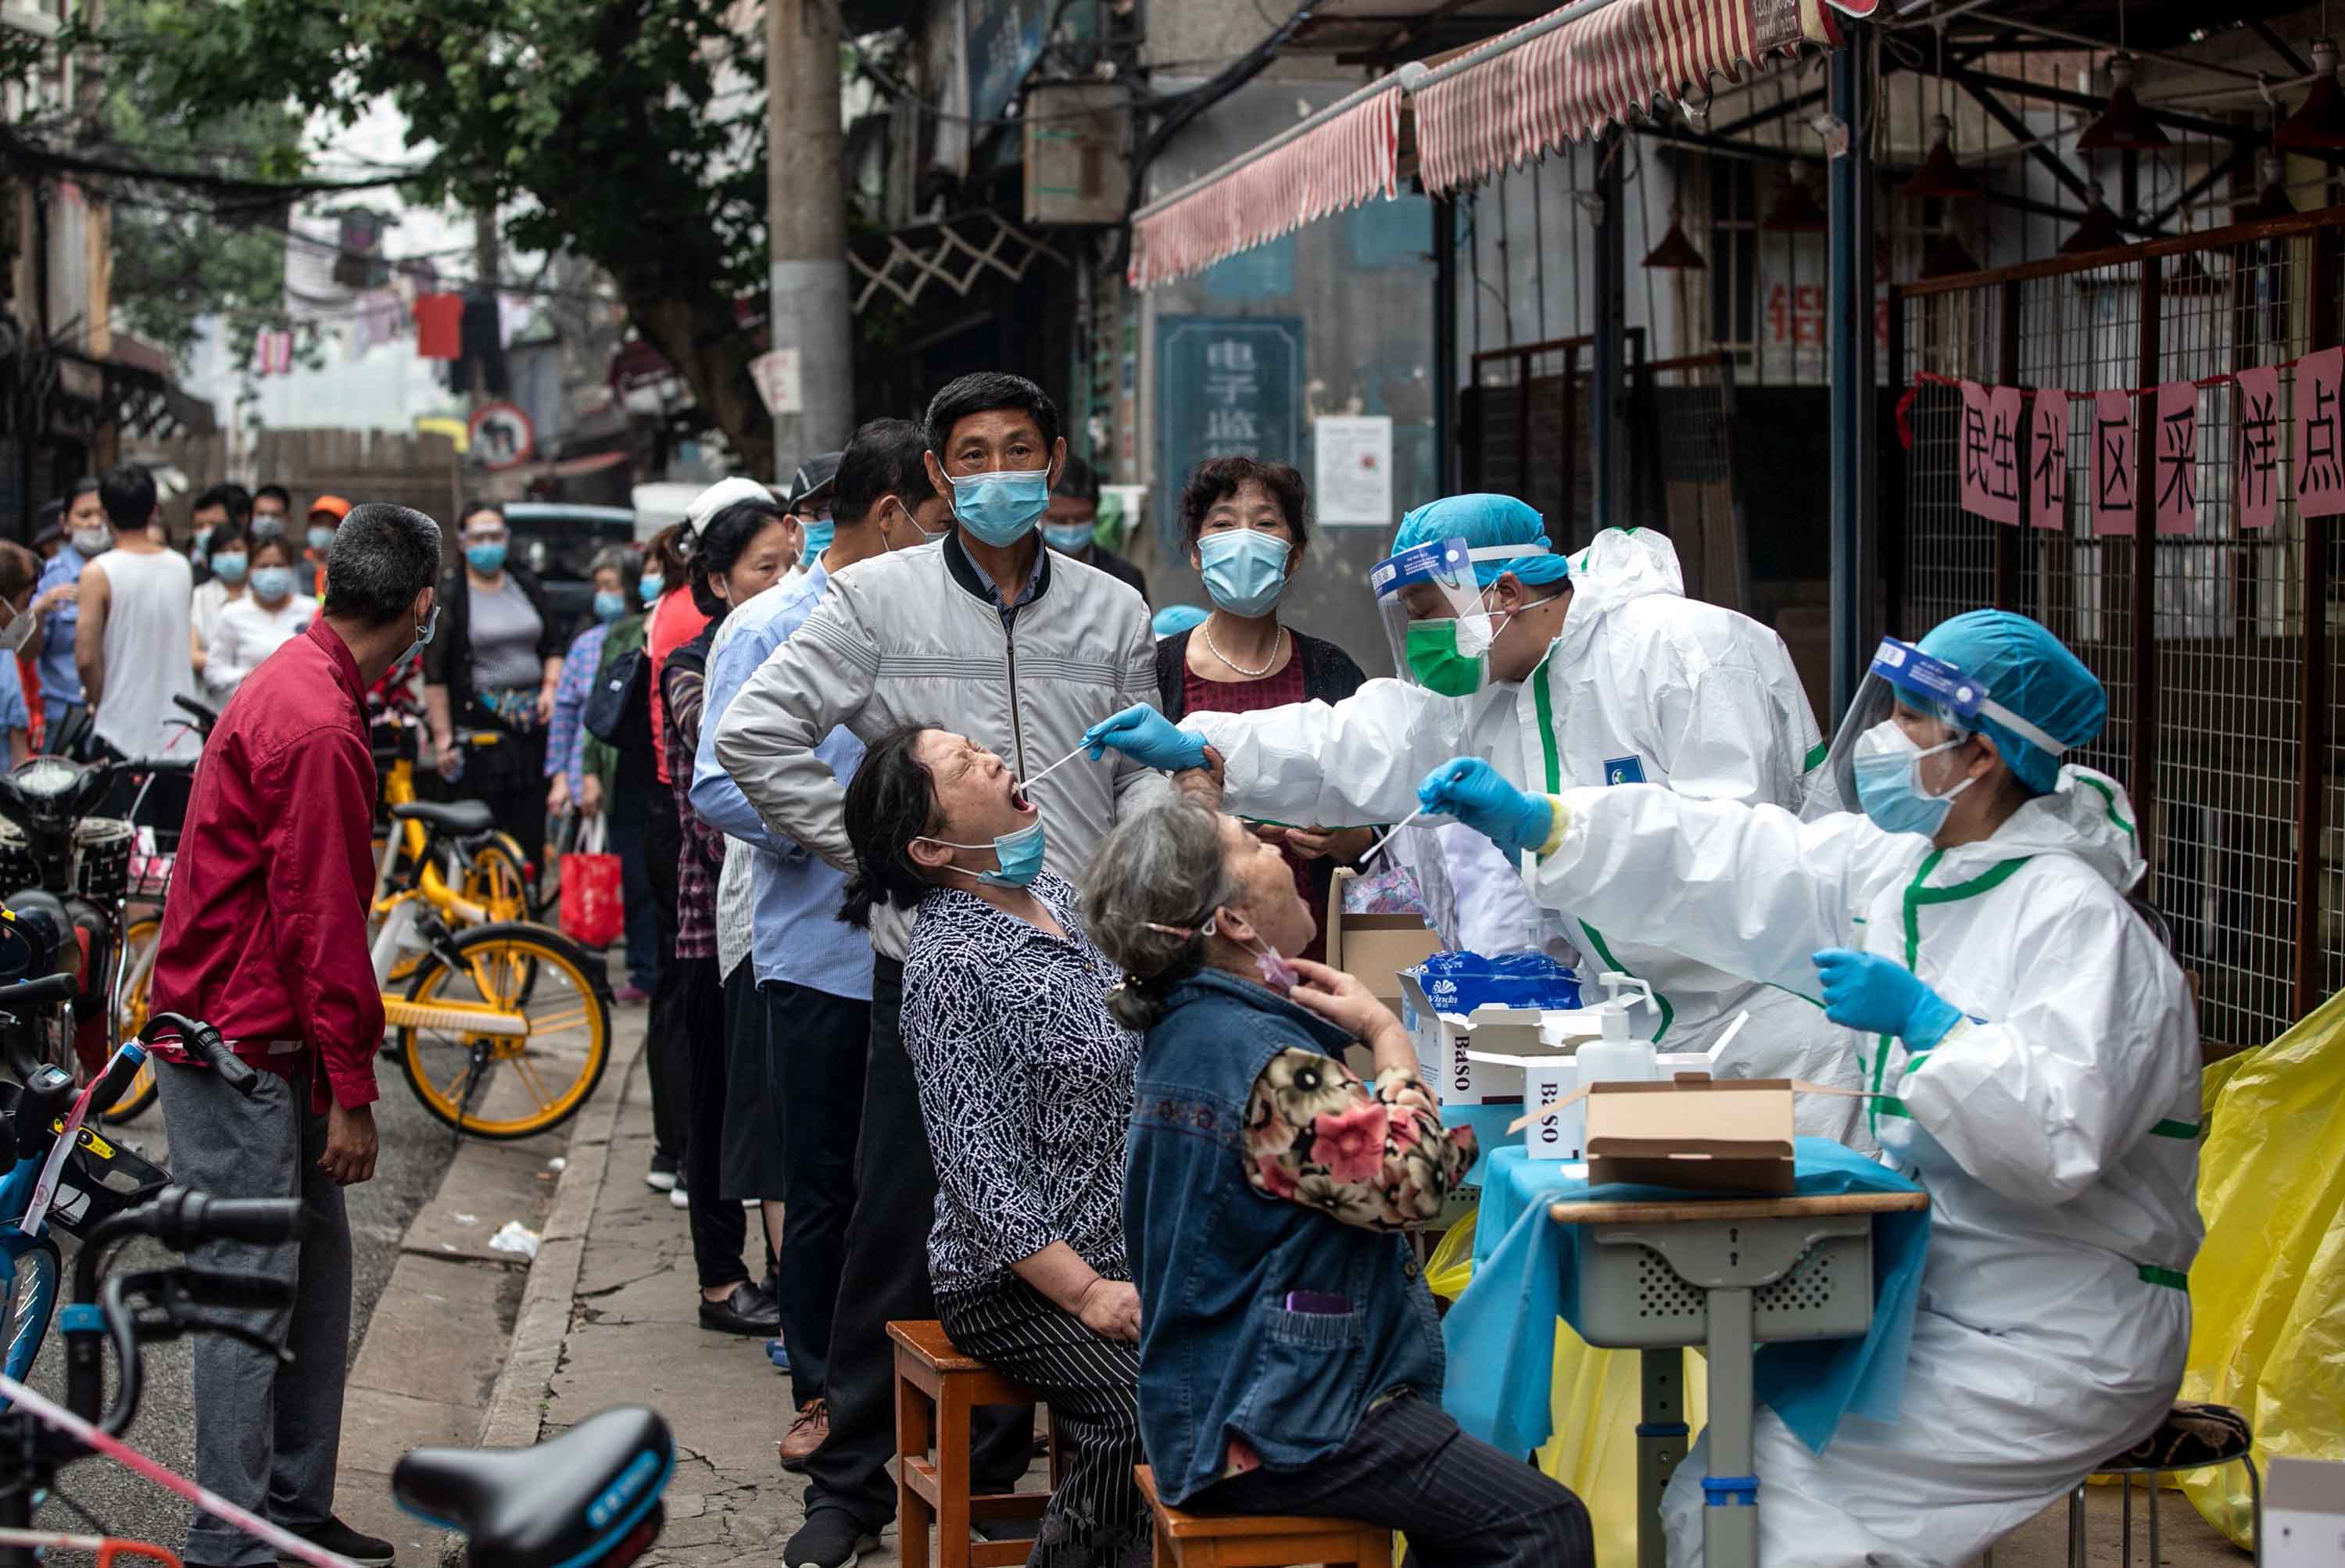 Medical workers take swab samples from residents to be tested for COVID-19 in Wuhan on May 15.